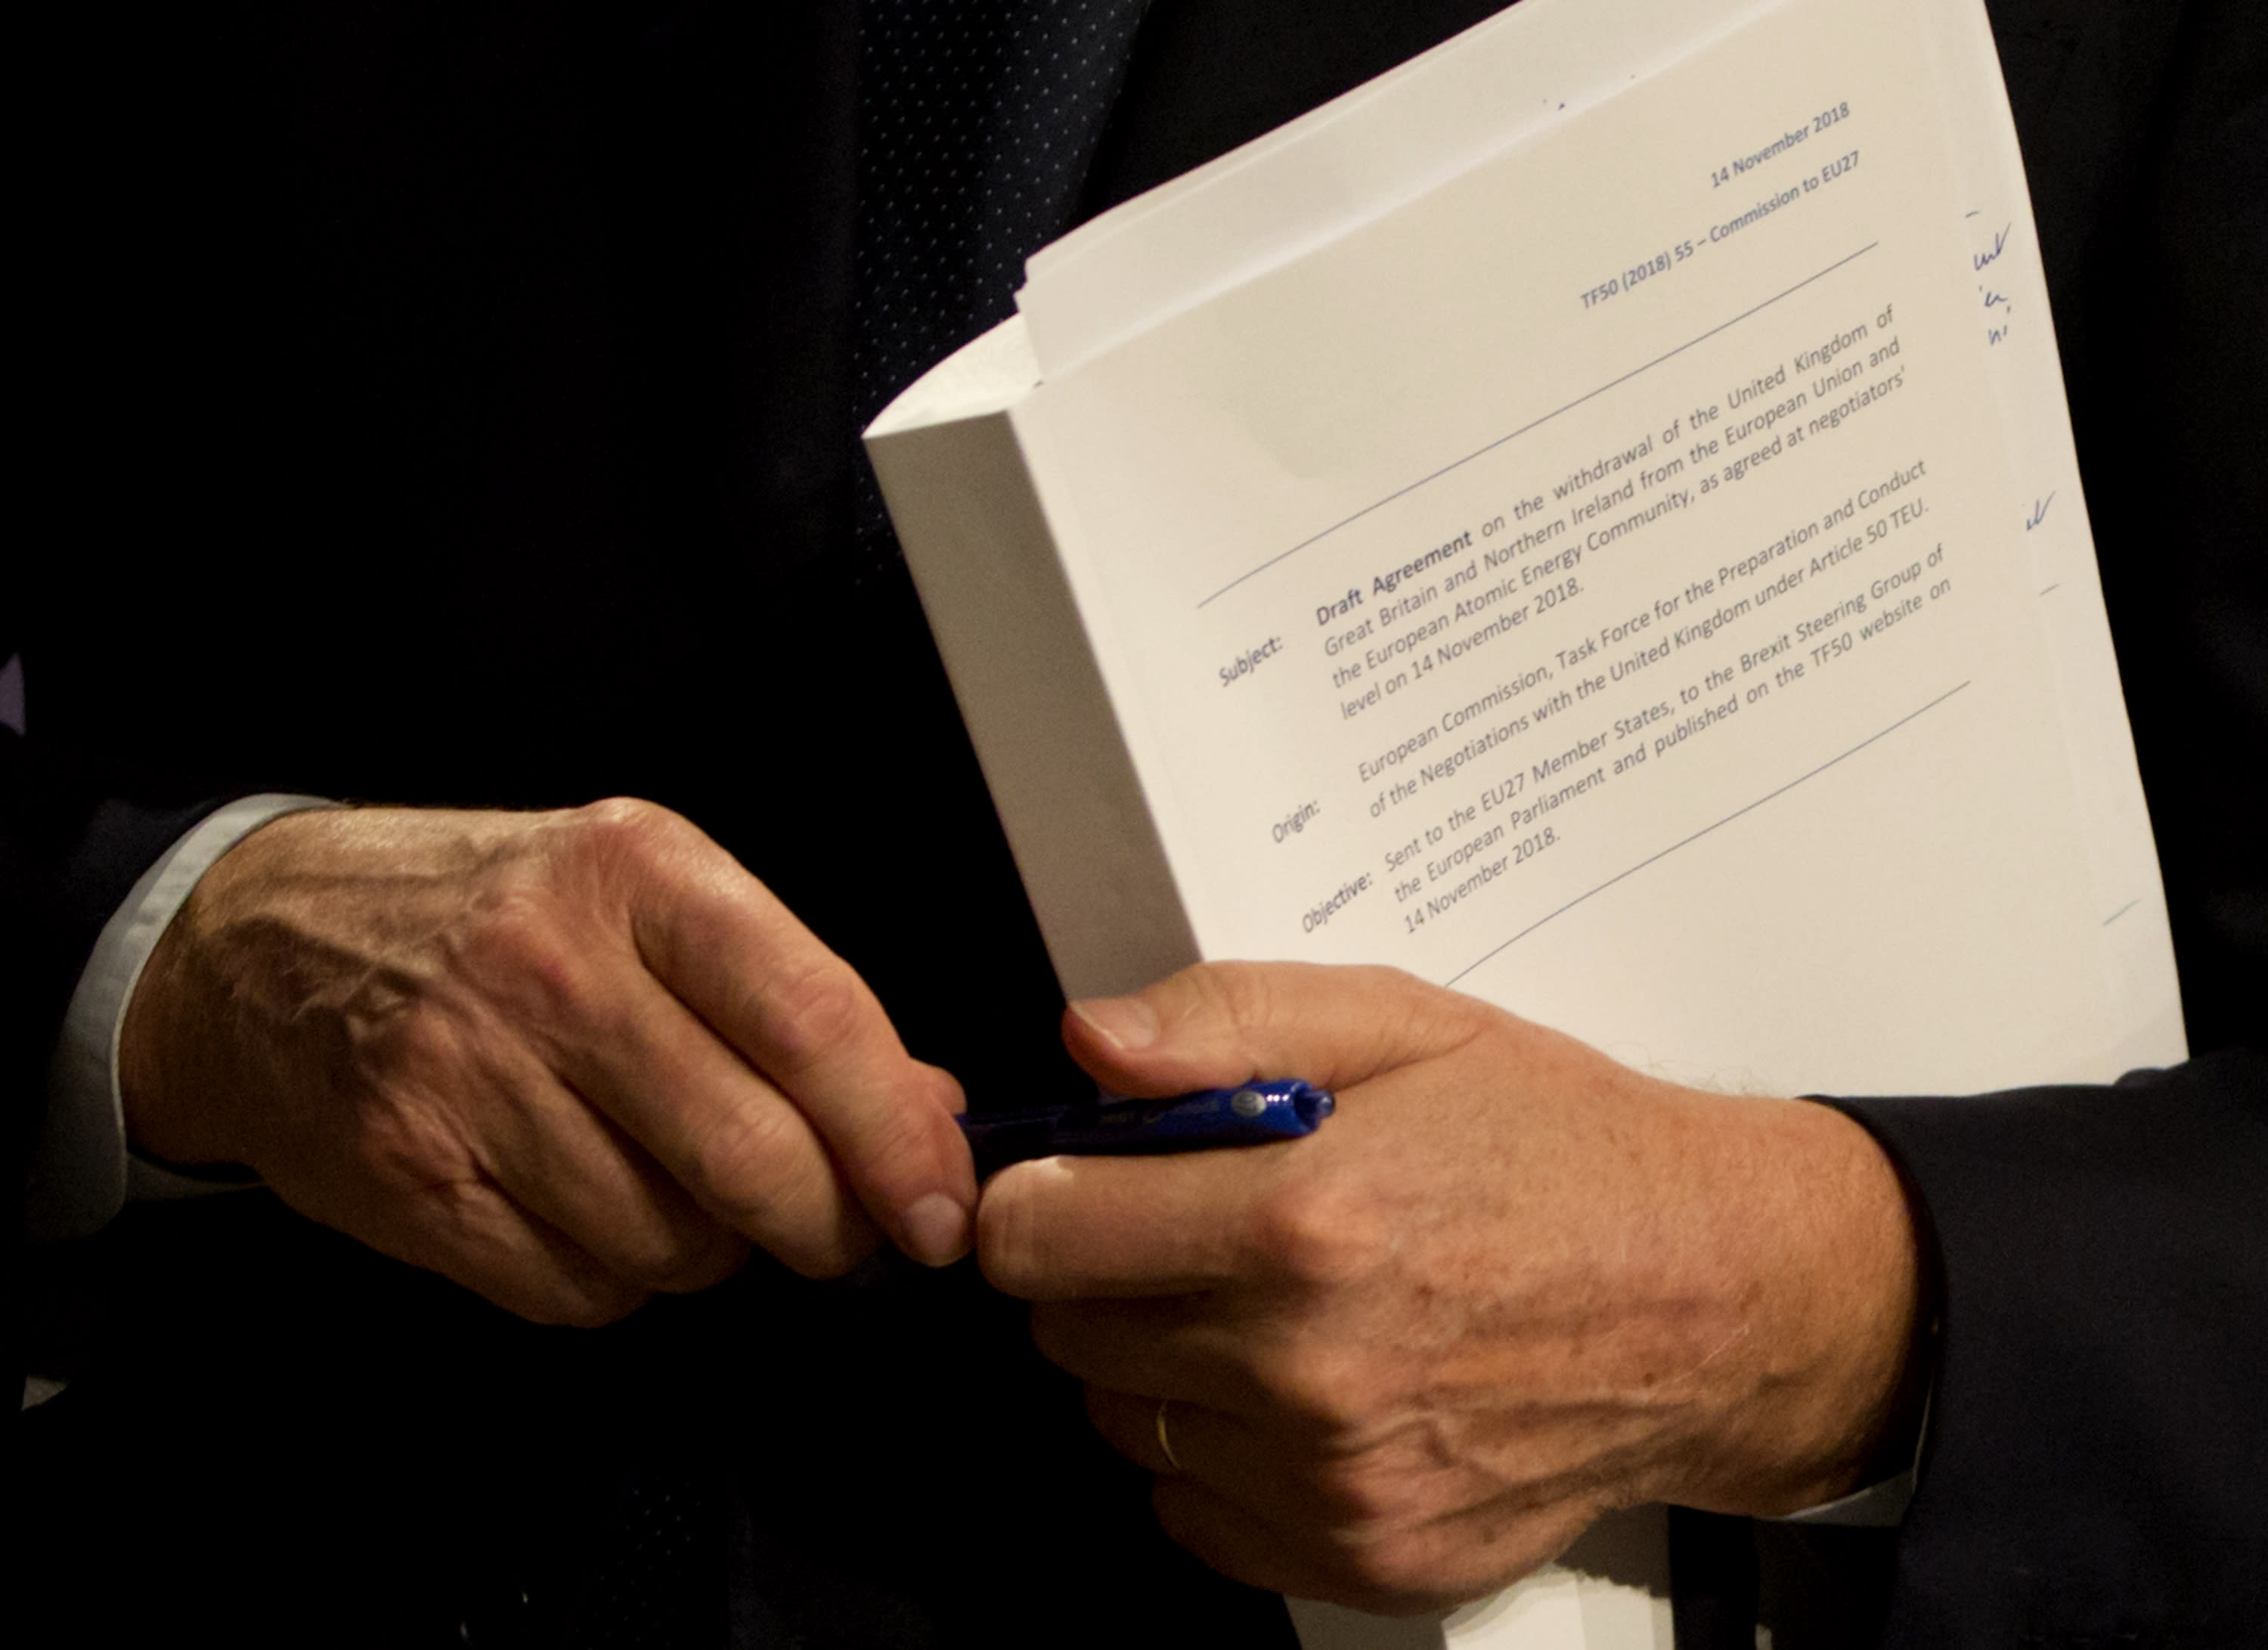 EU chief Brexit negotiator Michel Barnier holds the draft withdrawal agreement during a media conference in Brussels on Wednesday, Nov. 14, 2018. EU ambassadors met in Brussels Wednesday, in a closed door session, to discuss the draft agreement. (AP Photo/Virginia Mayo)